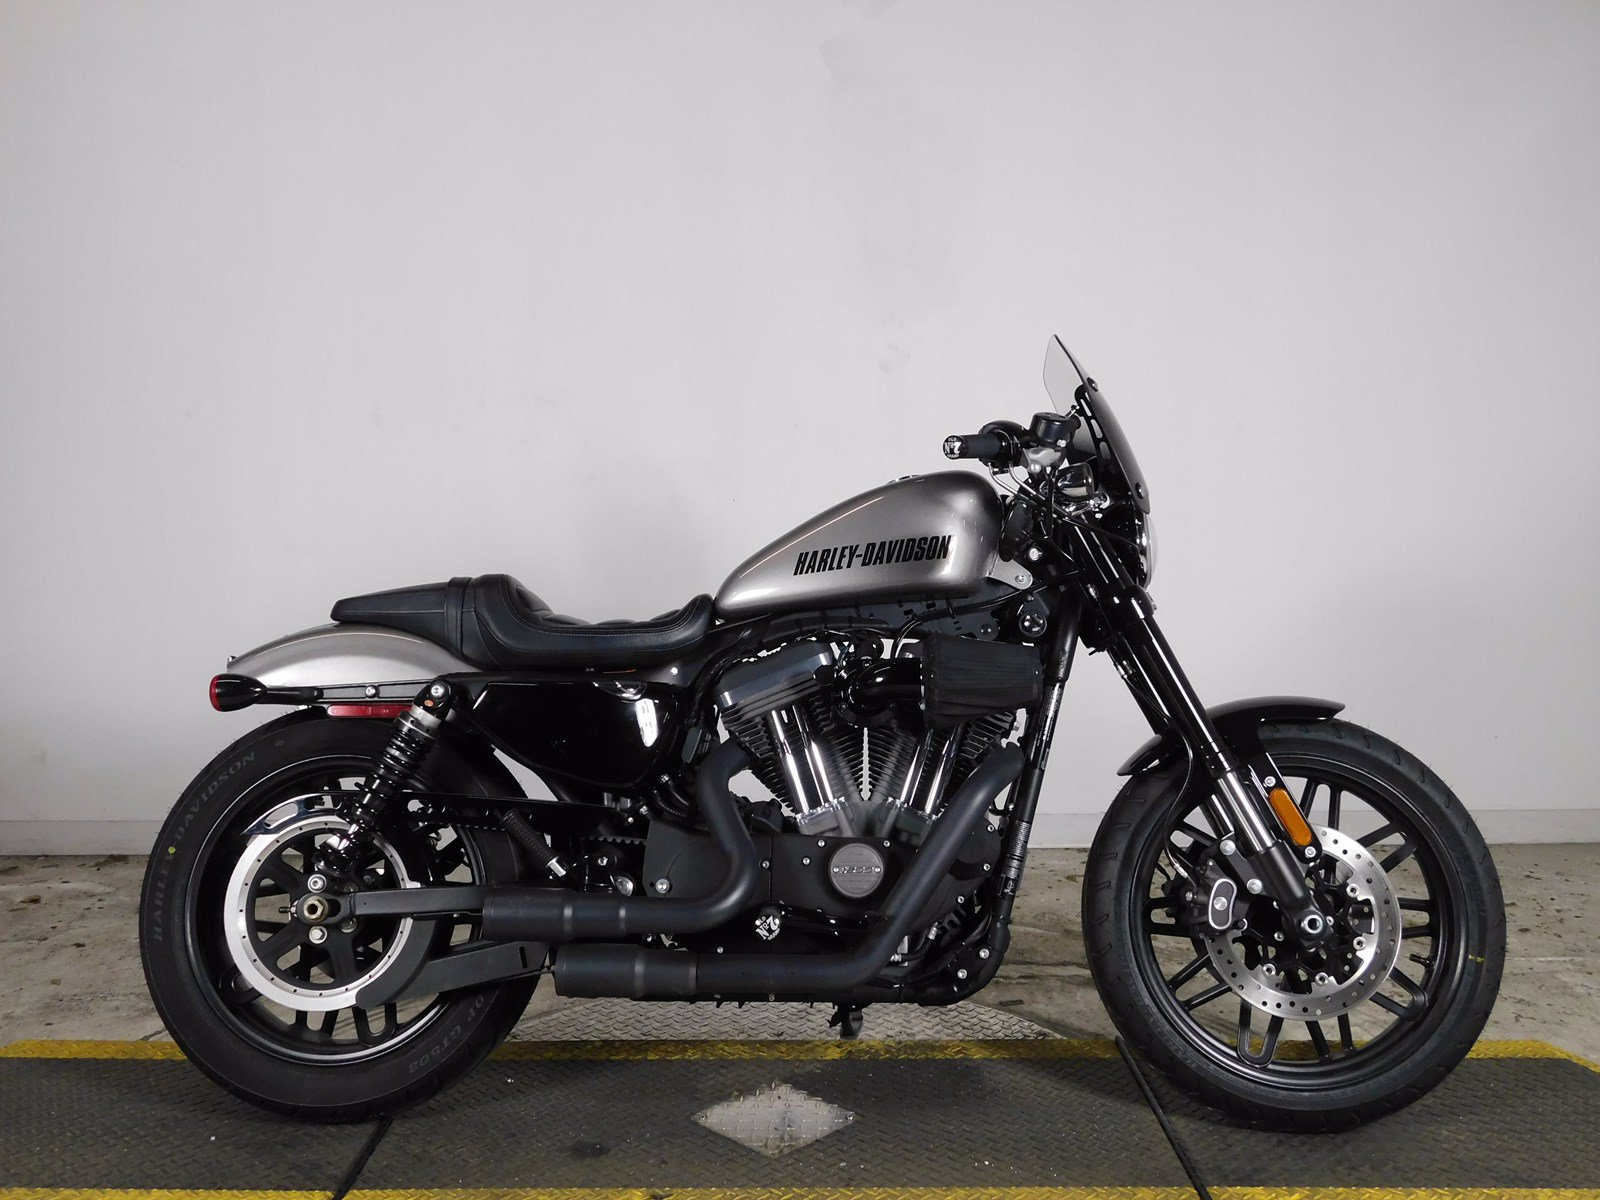 Pre-Owned 2017 Harley Davidson Sportster Roadster XL1200CX